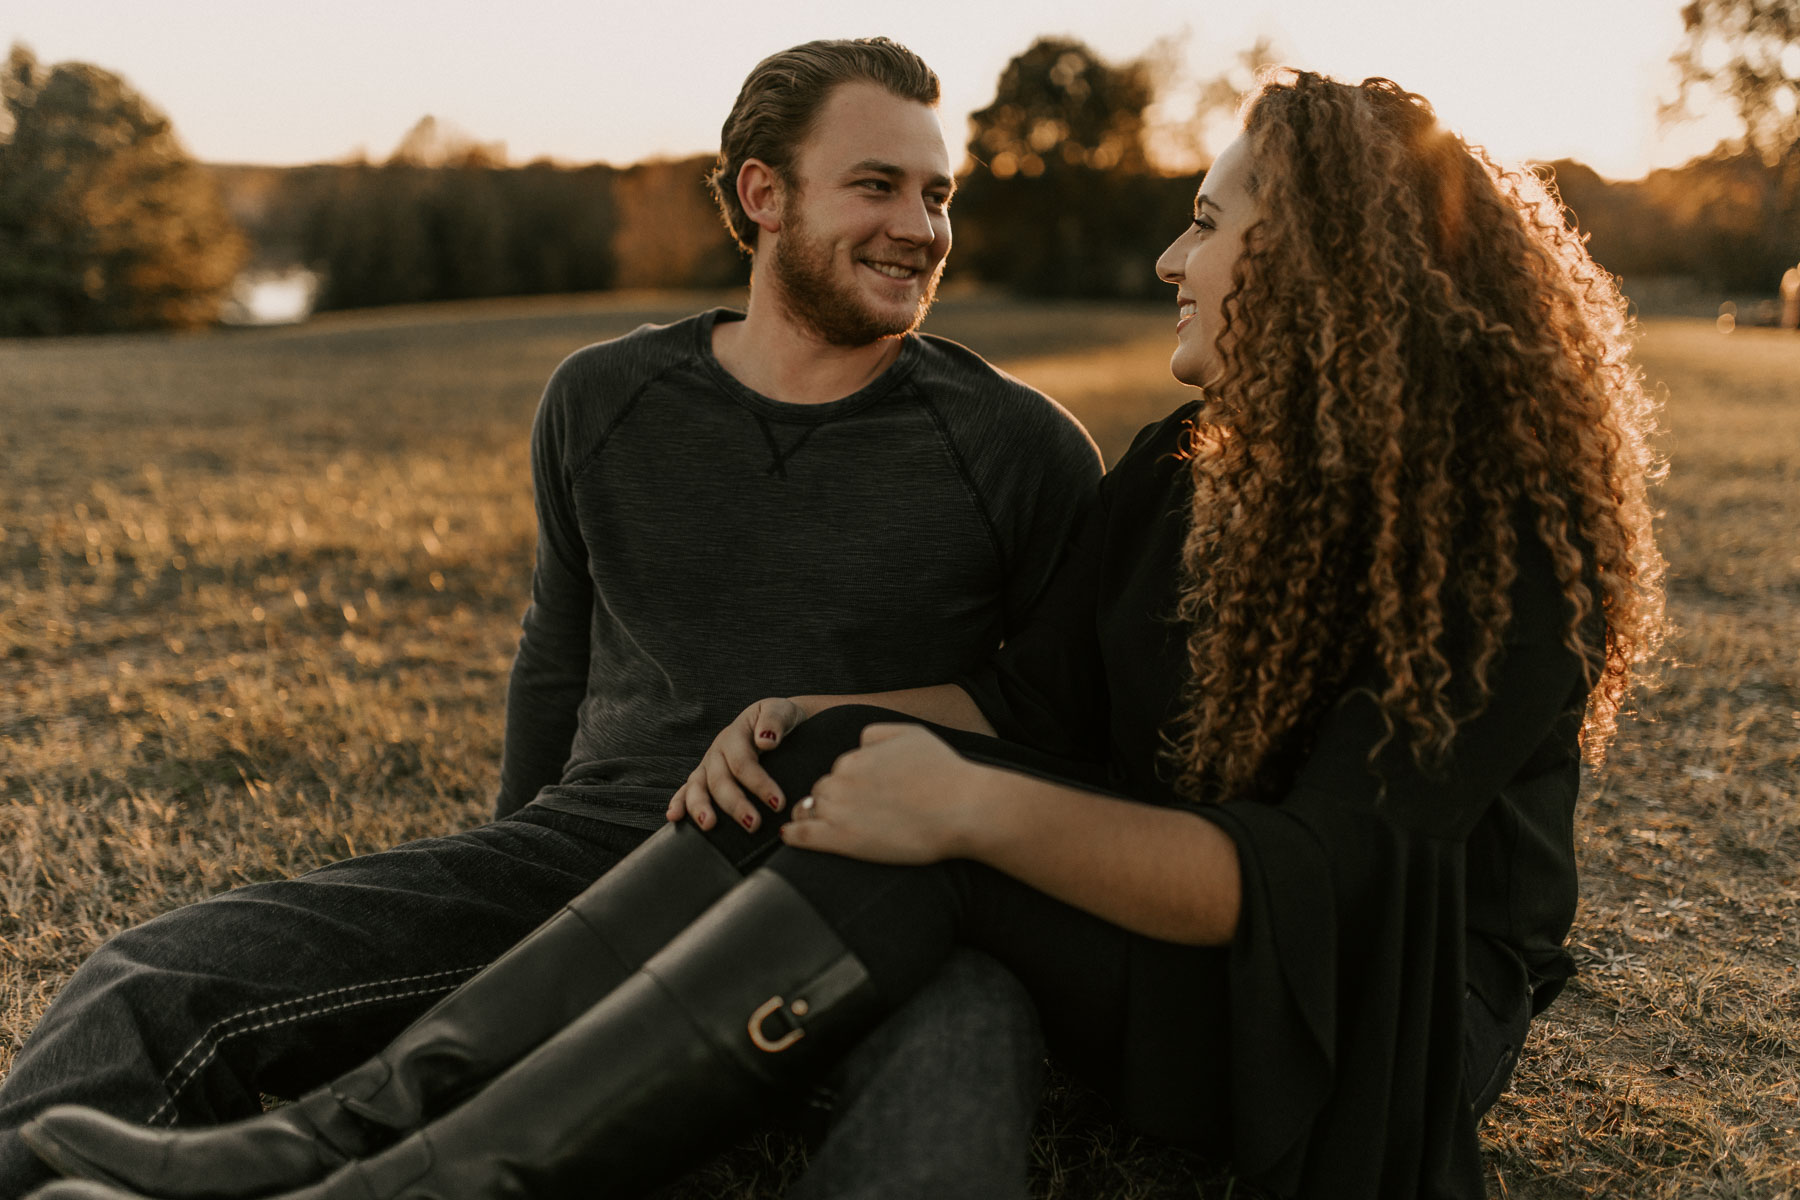 couple laughing and joking around in east Texas